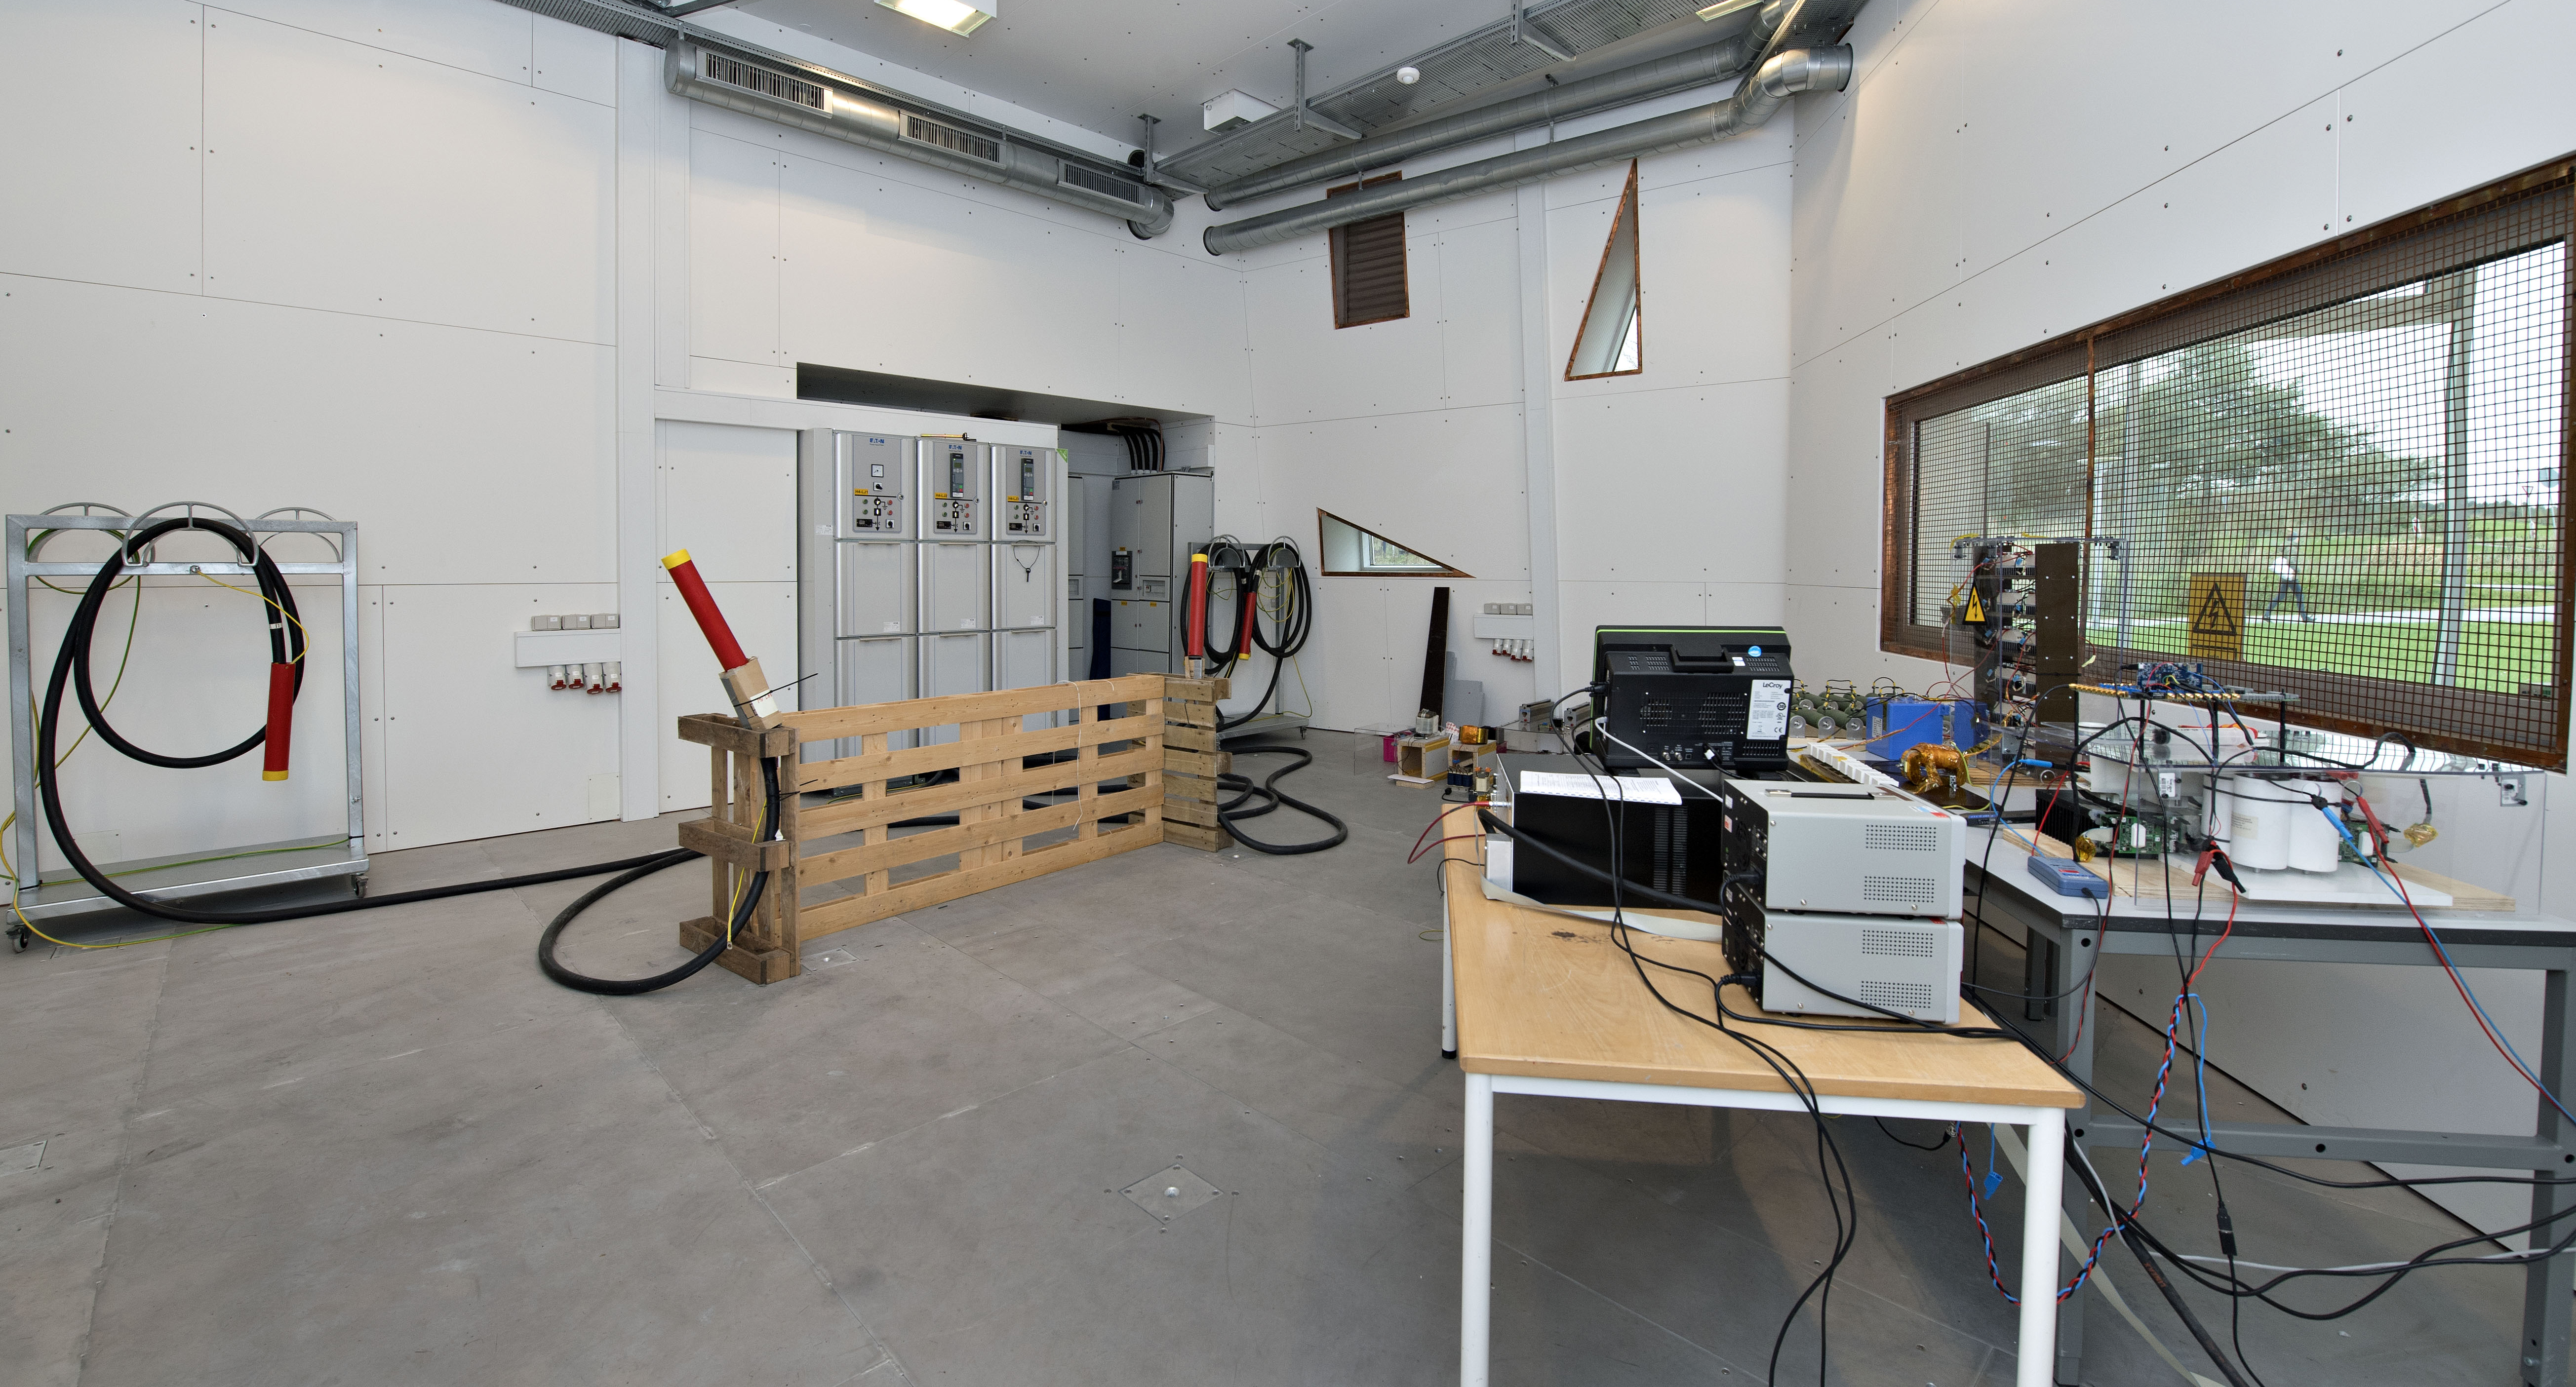 Test room for safe testing of devices connected directly to the power grid. Rated power 2 MVA.